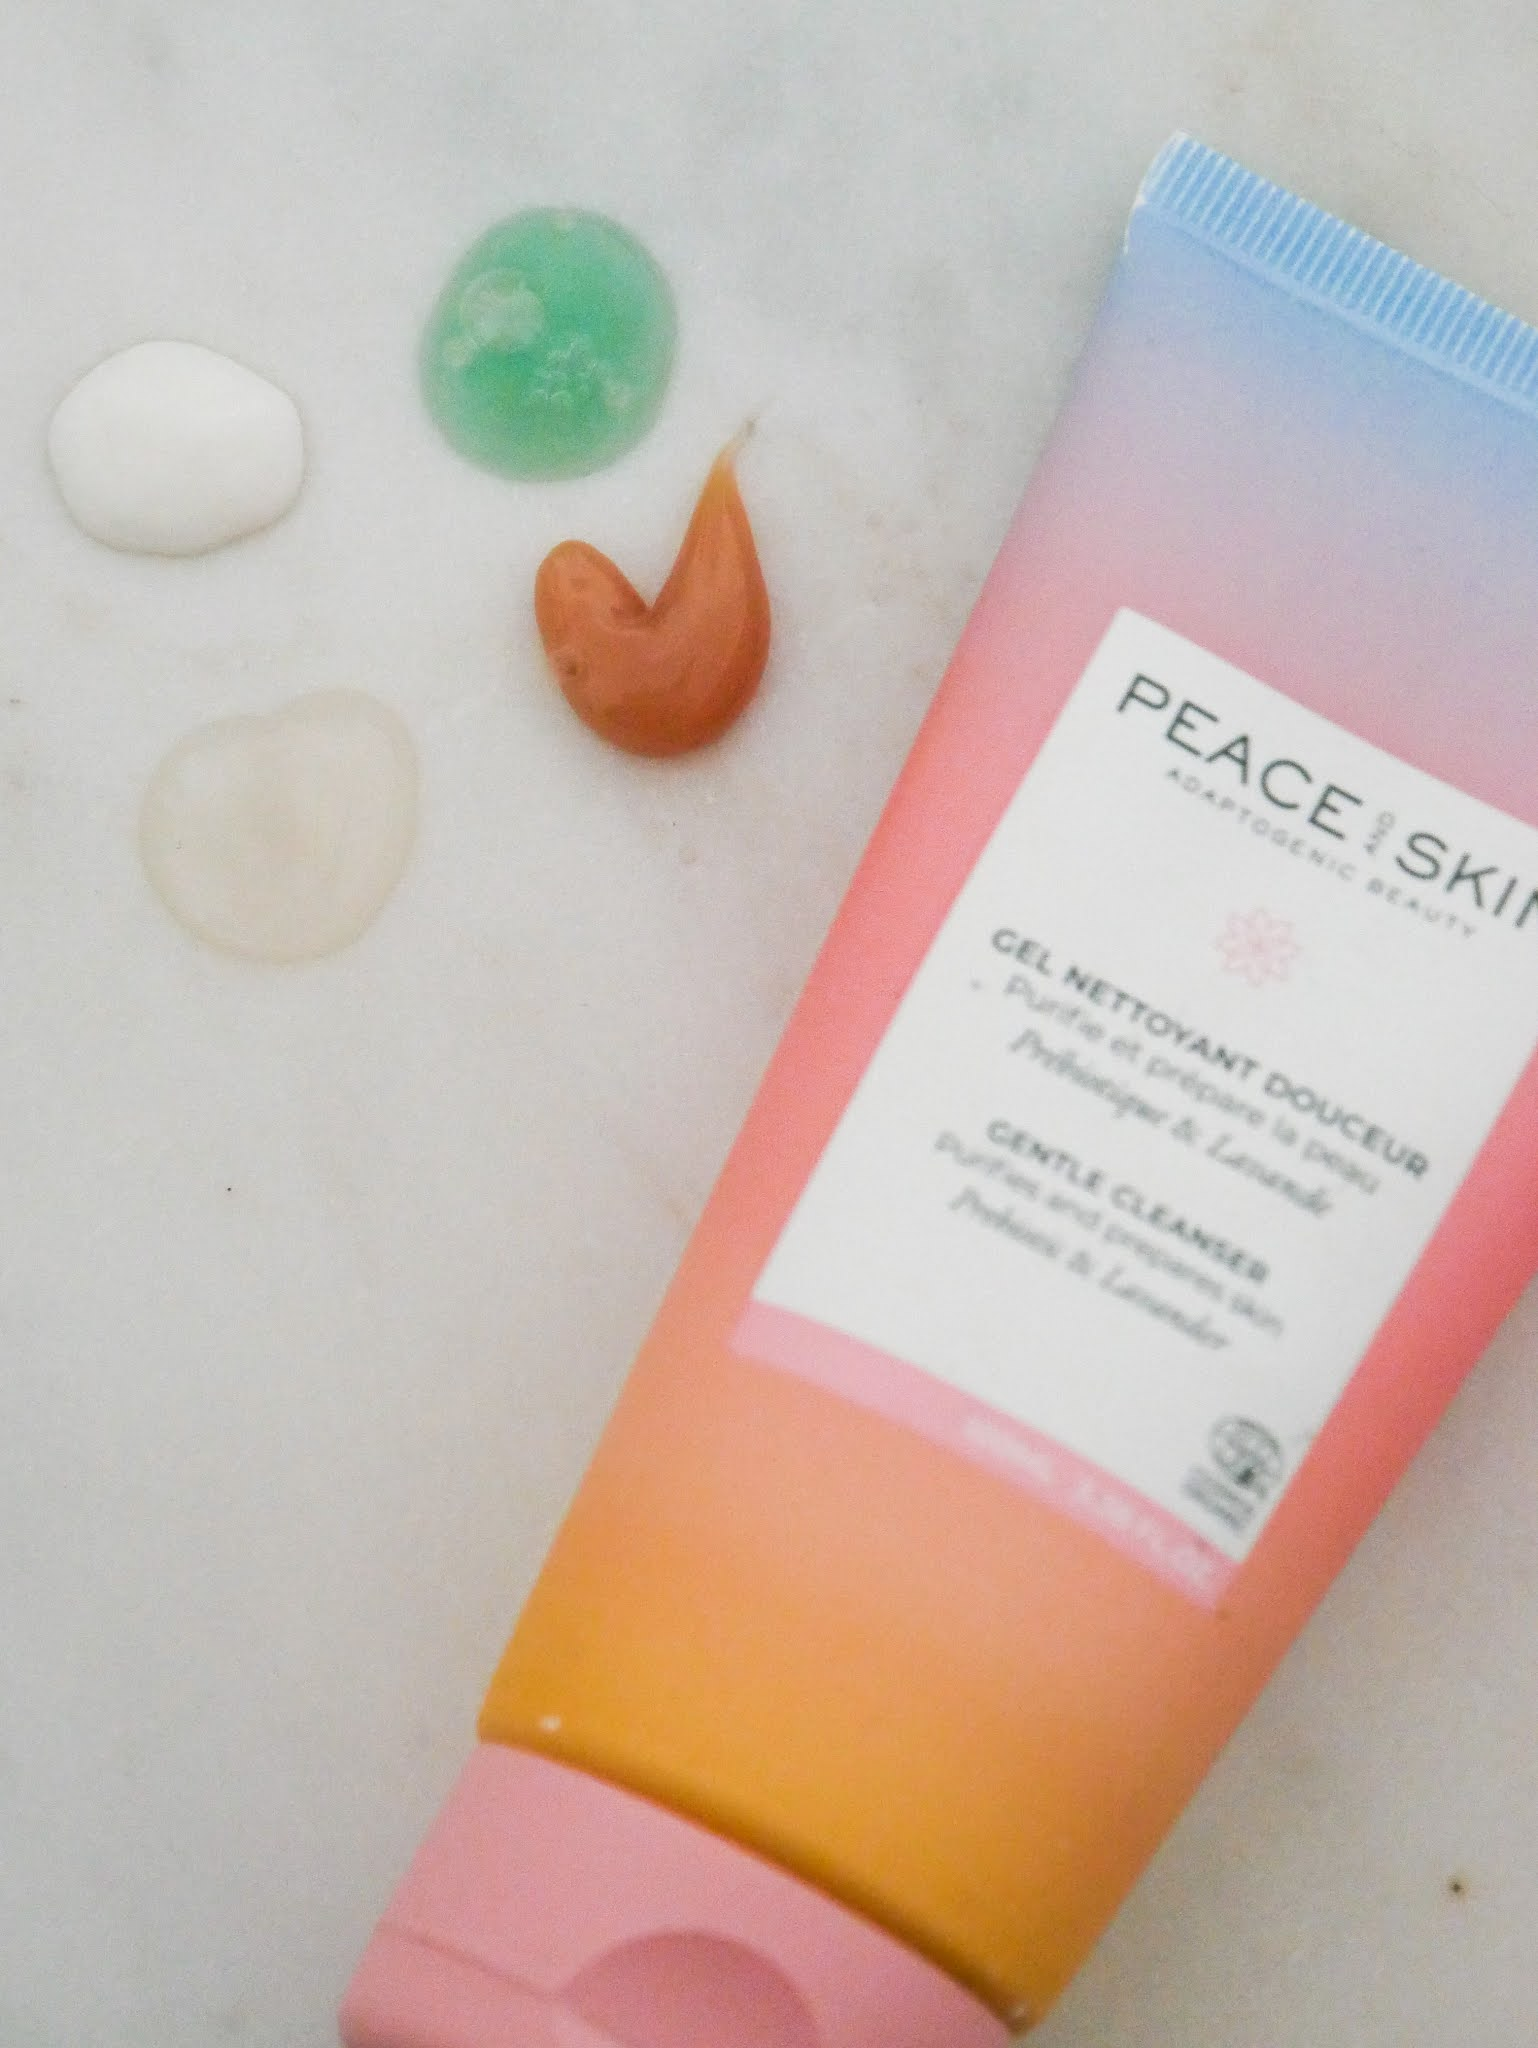 peace and skin